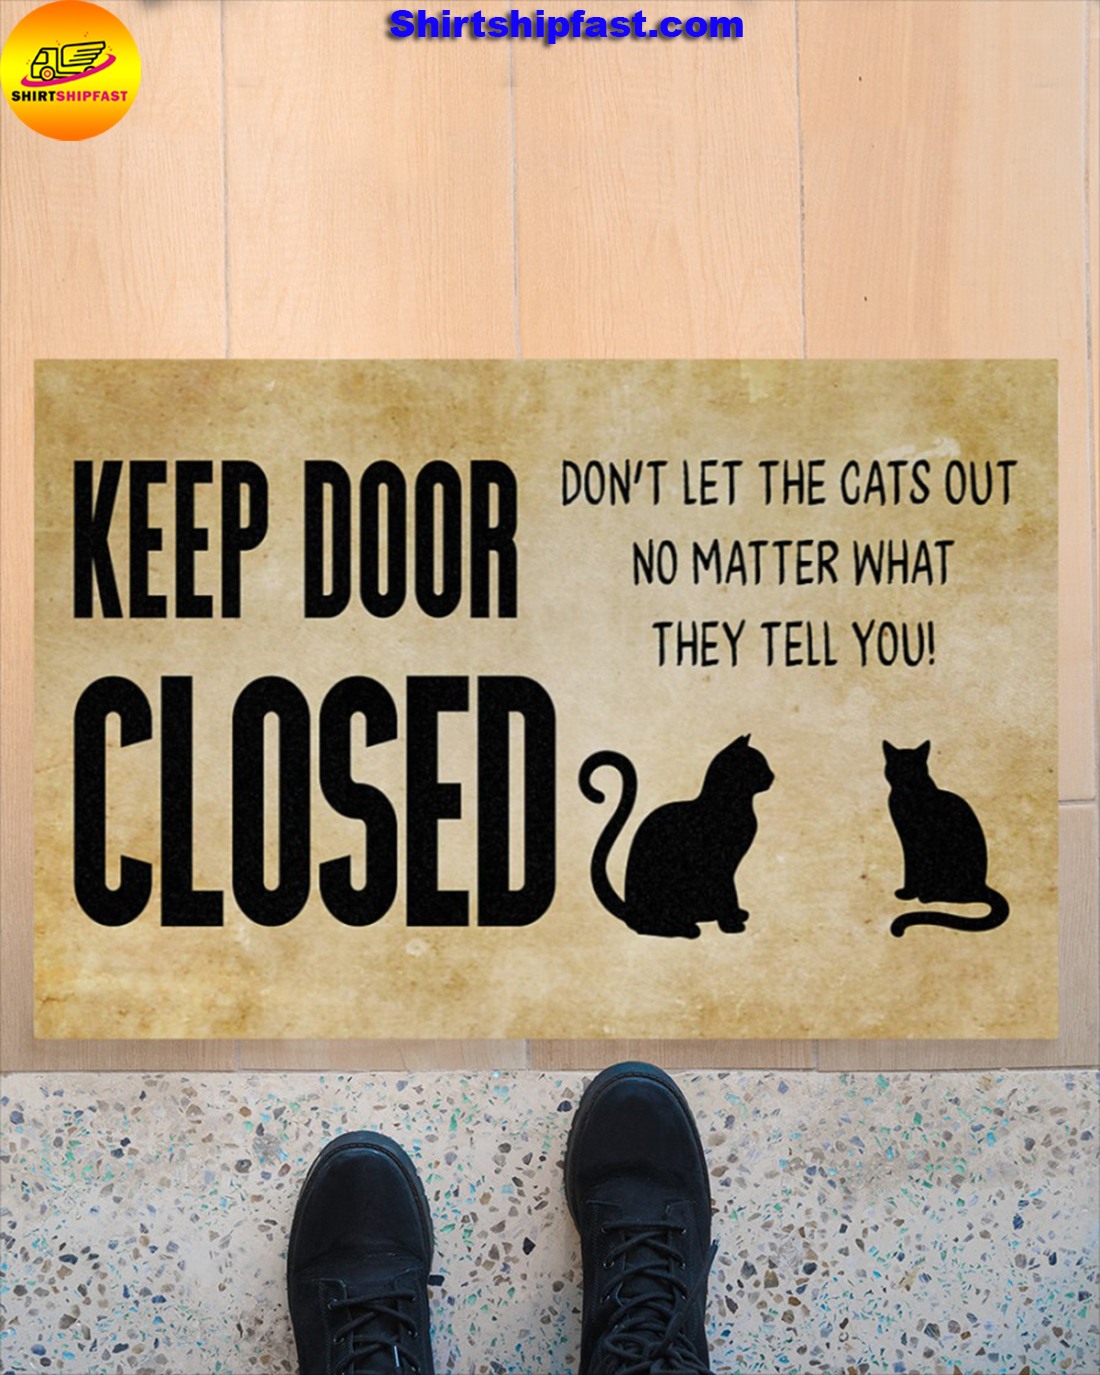 Keep door closed Don't let the cats out no matter what they tell you doormat